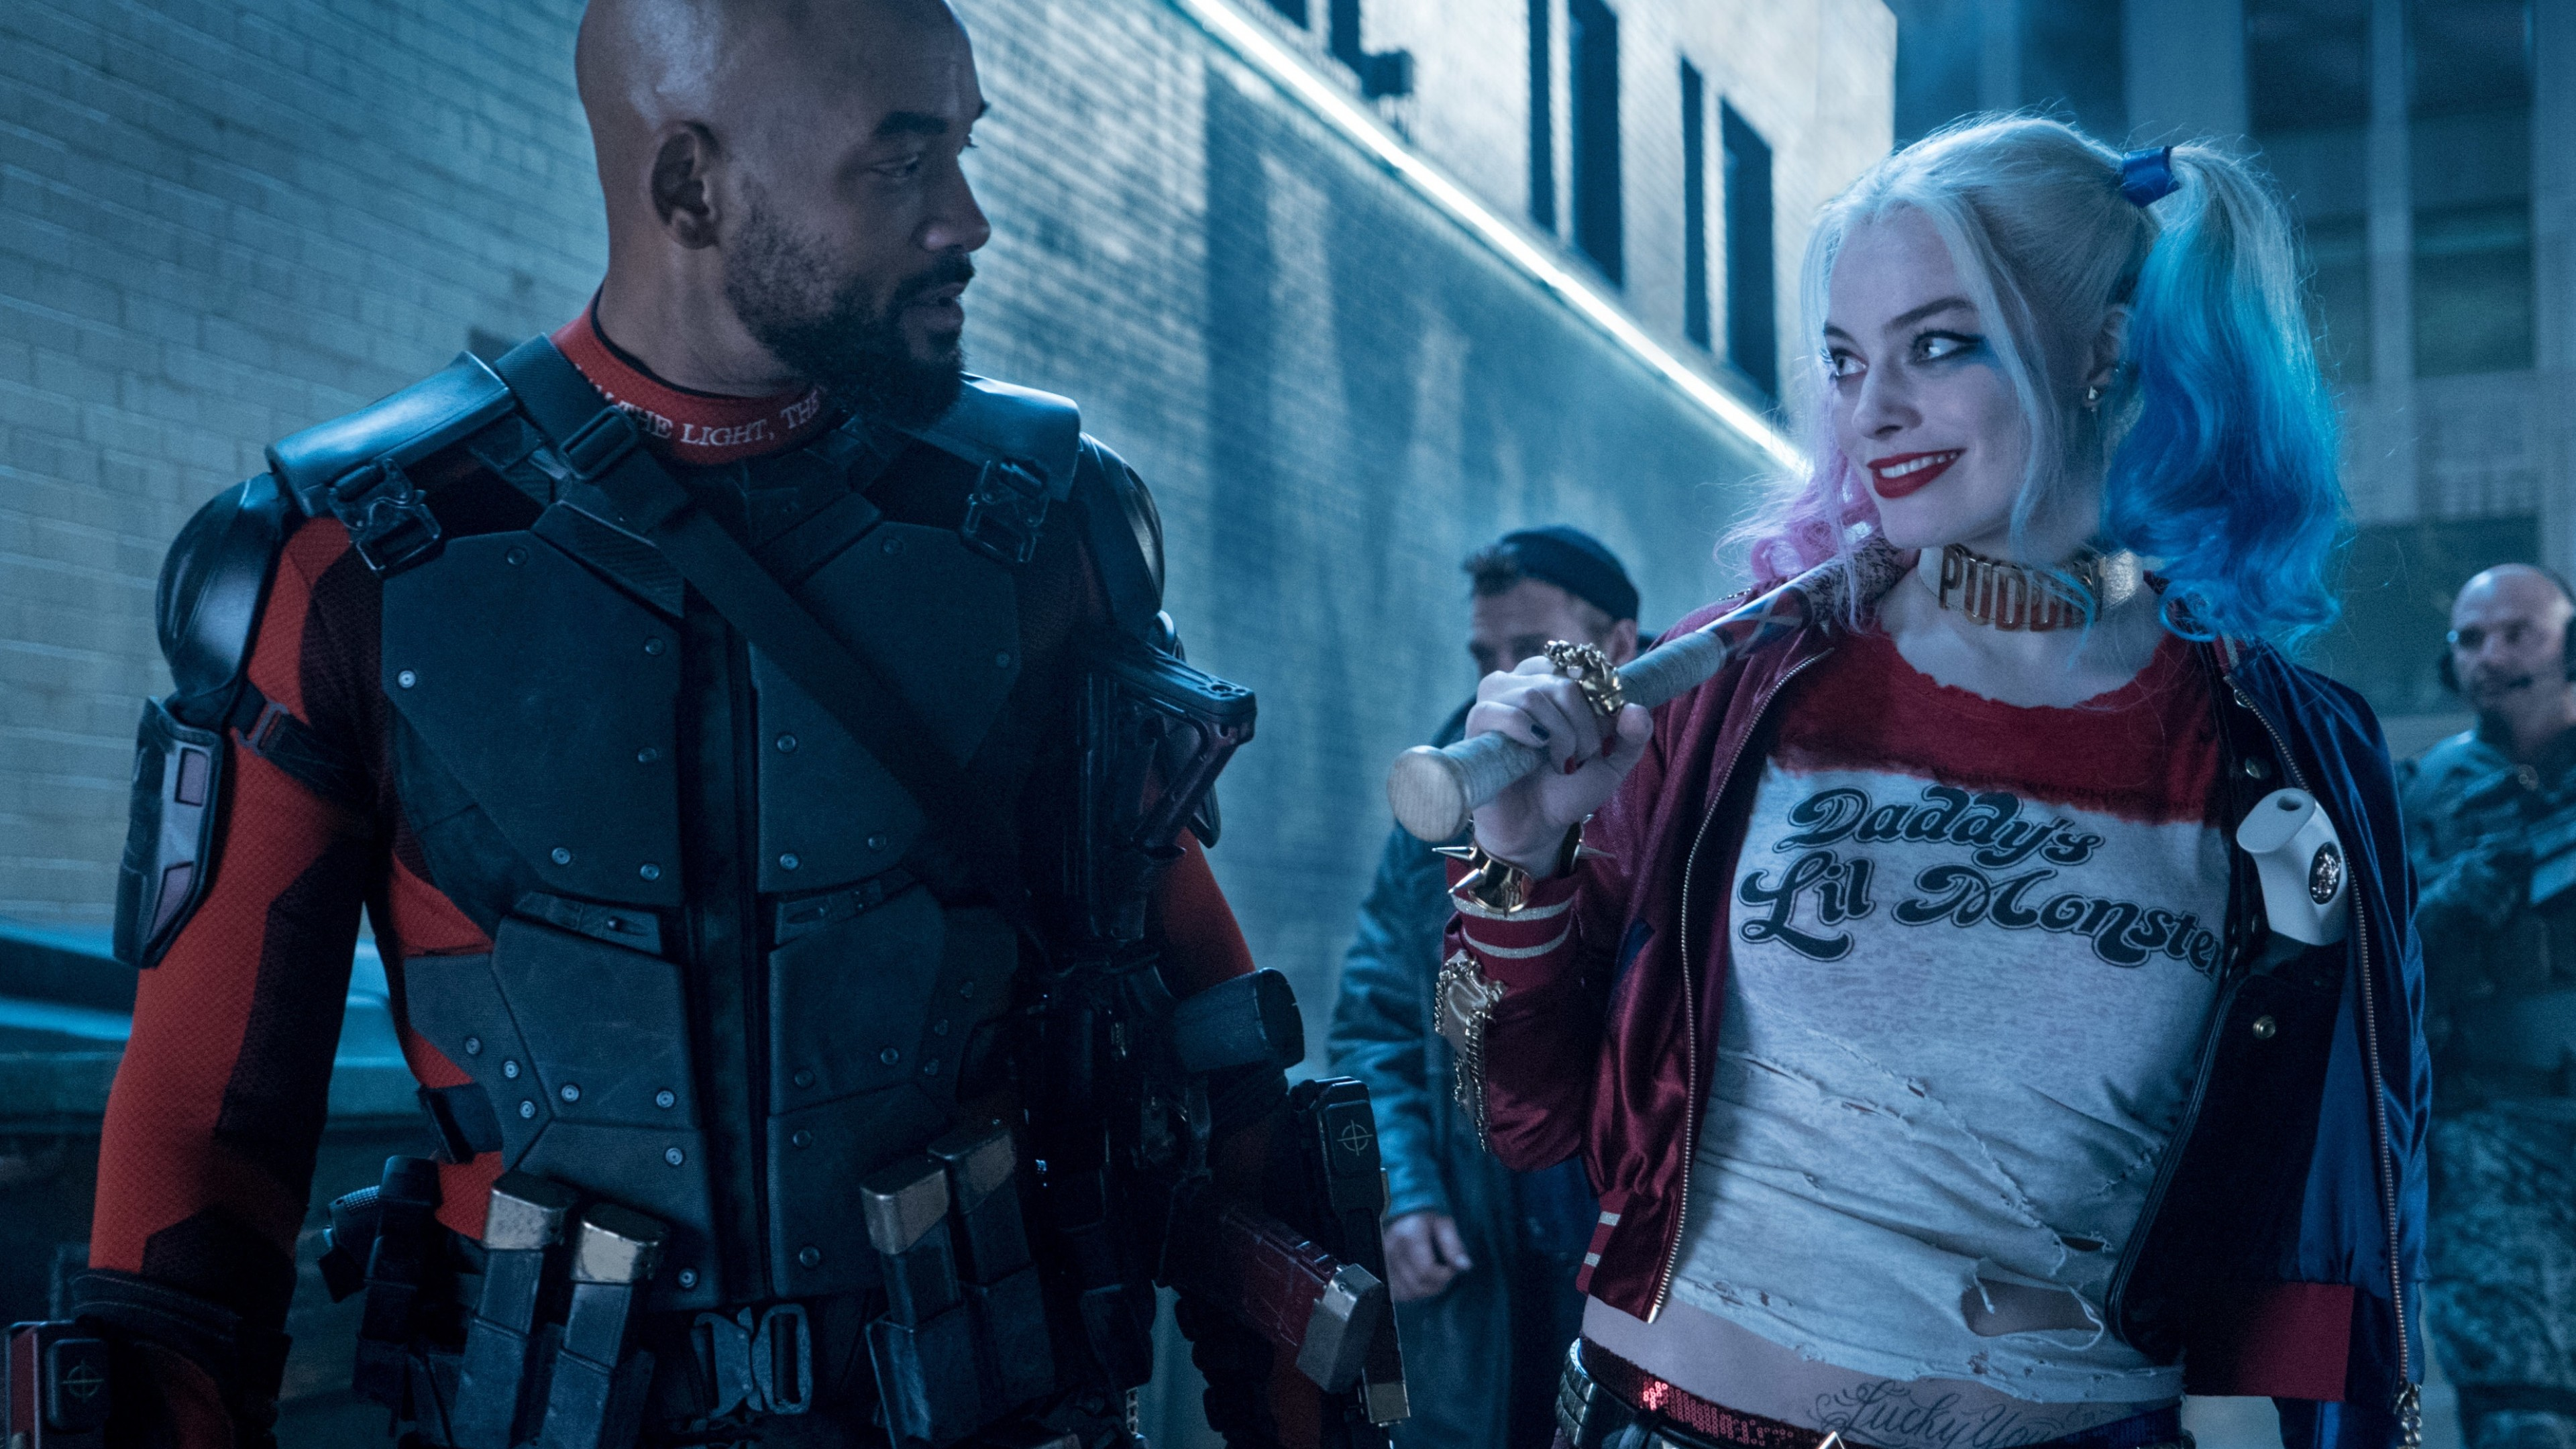 Wallpaper Suicide Squad Harley Quinn Margot Robbie Will Smith